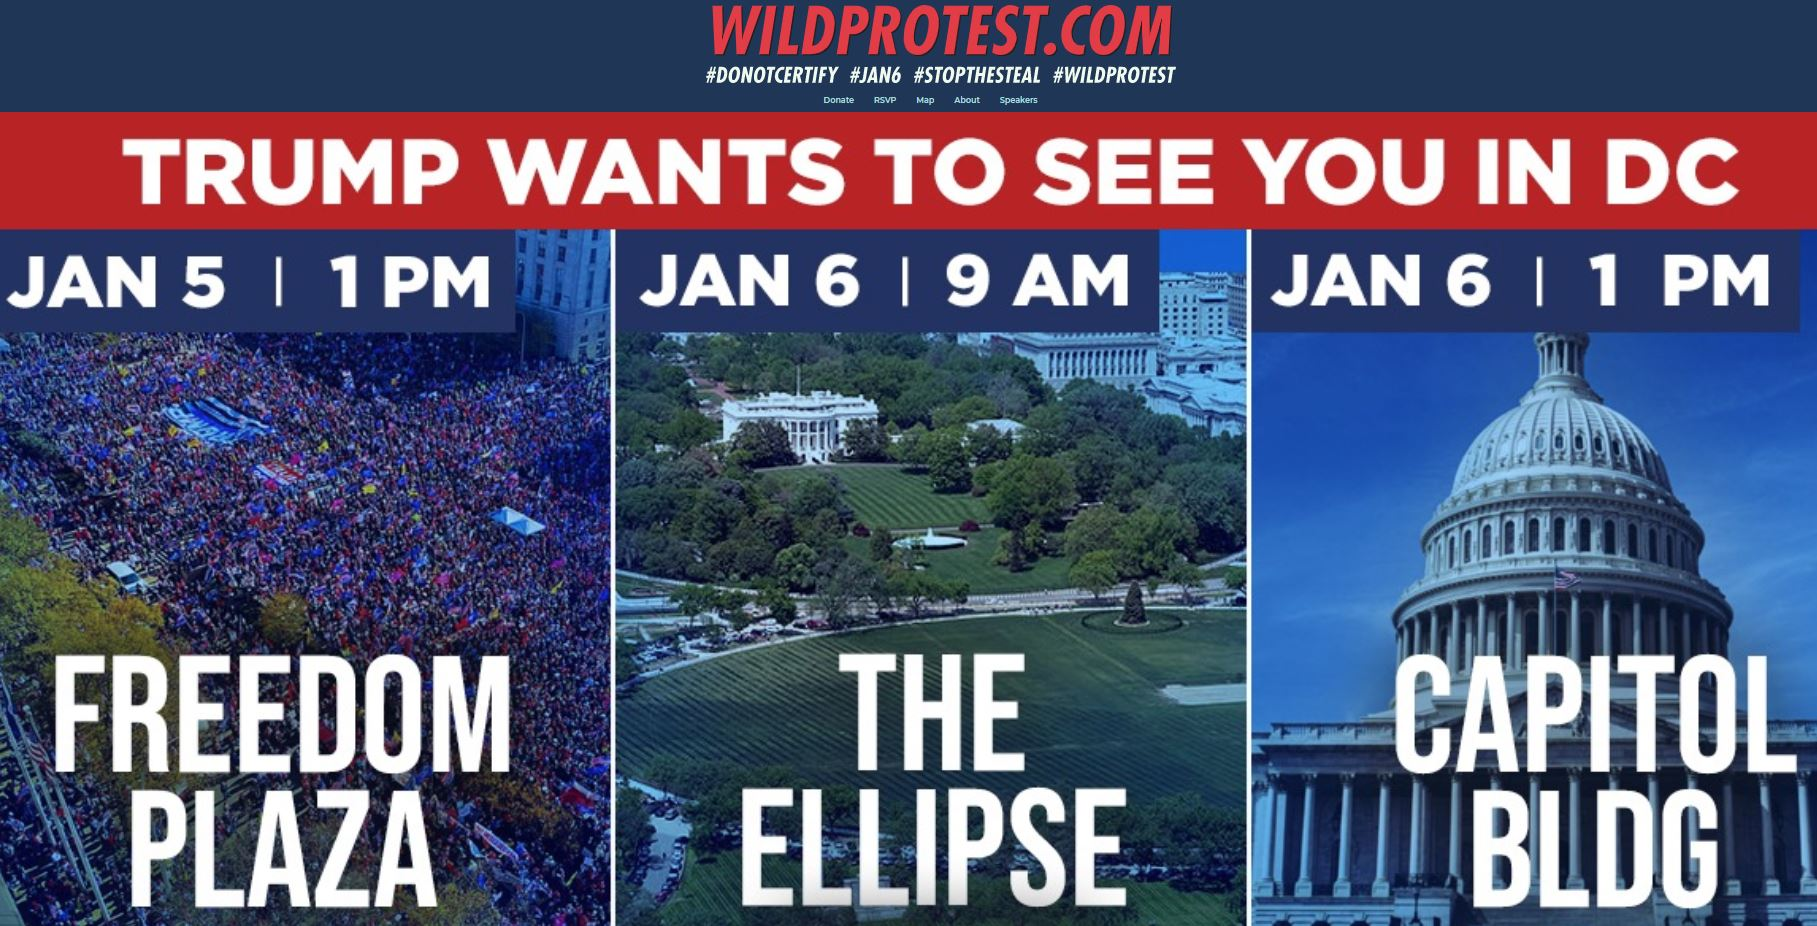 It's Going to Be HUGE! Join President Trump outside the White House on January 6th at the 'MARCH TO SAVE AMERICA'